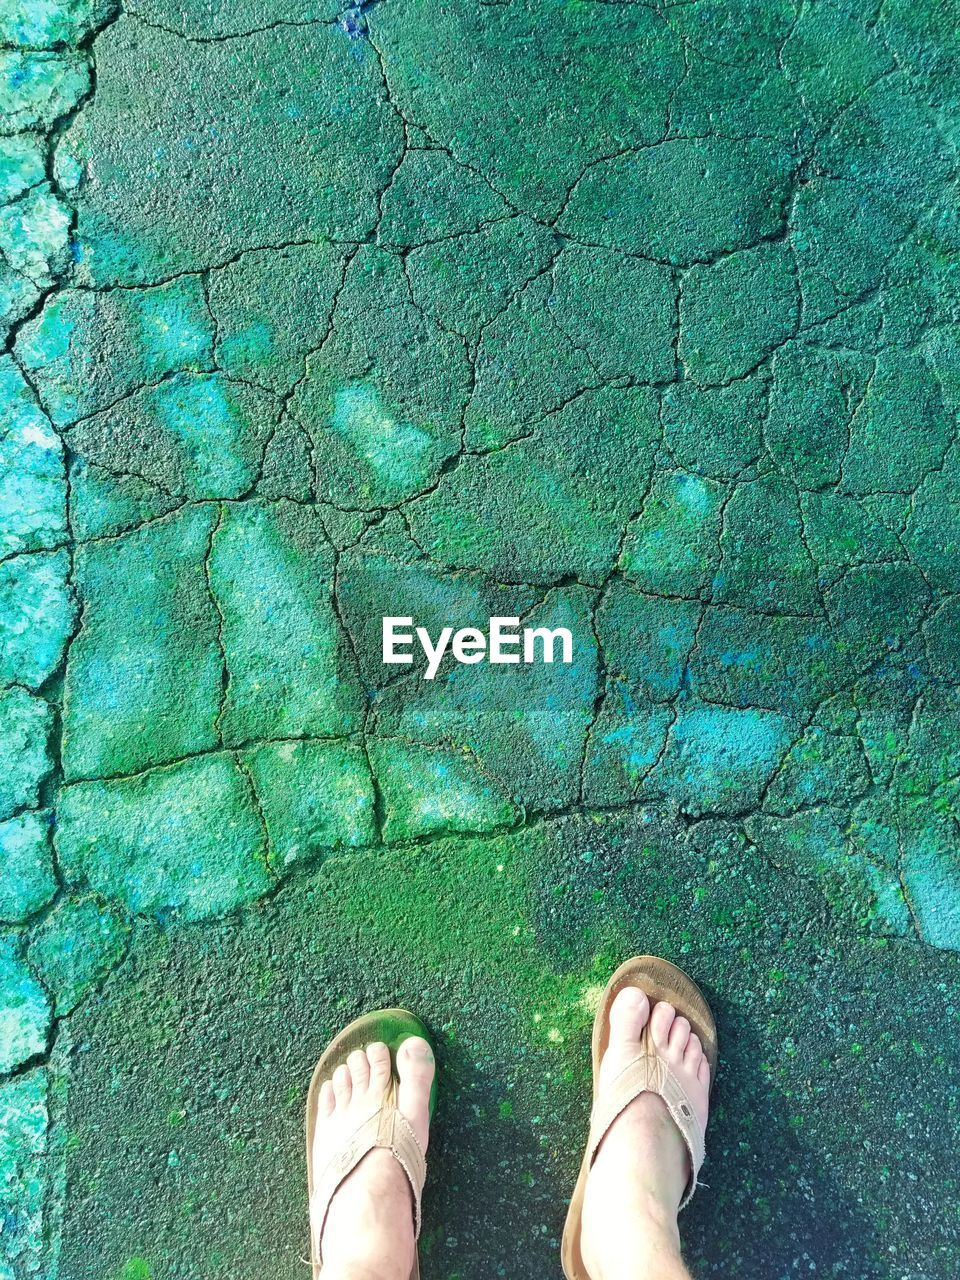 low section, one person, human leg, personal perspective, body part, human body part, real people, standing, human foot, lifestyles, shoe, day, women, high angle view, water, green color, directly above, leisure activity, outdoors, turquoise colored, swimming pool, human limb, shallow